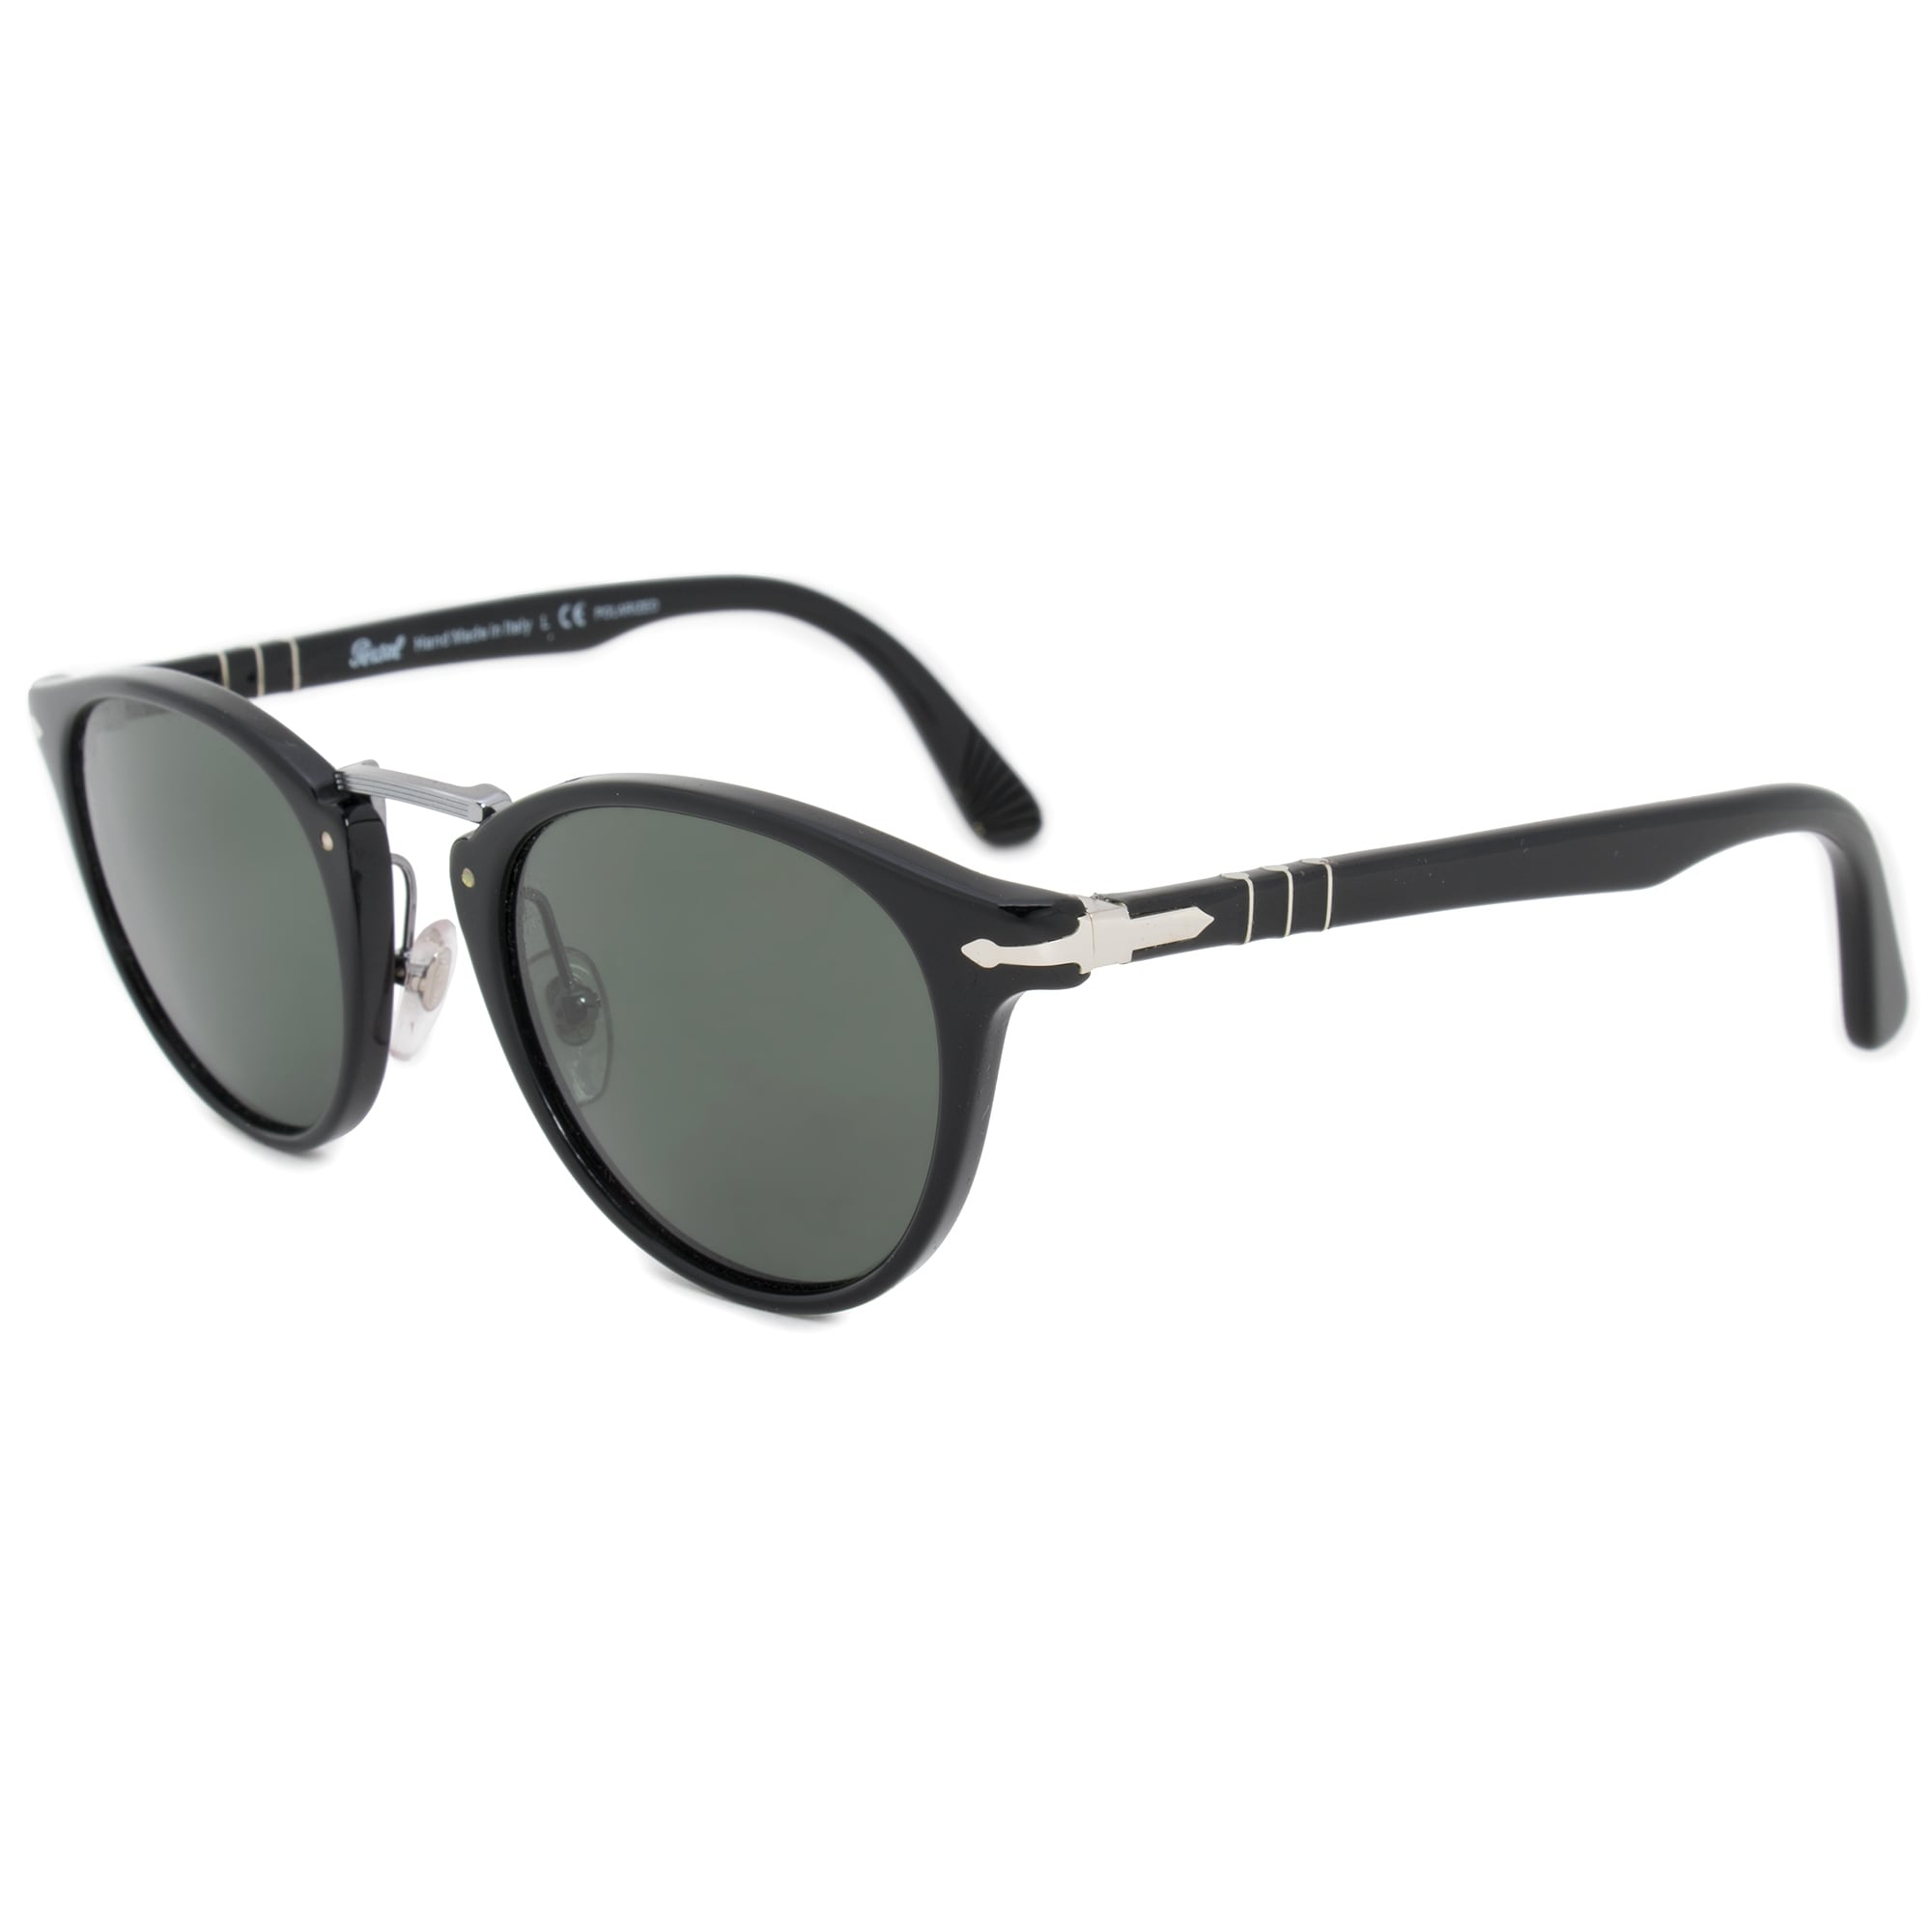 2bf481f4c097f Shop Persol Typewriter Edition Oval Sunglasses PO3108S 95 58 49 - Free  Shipping Today - Overstock - 21408647